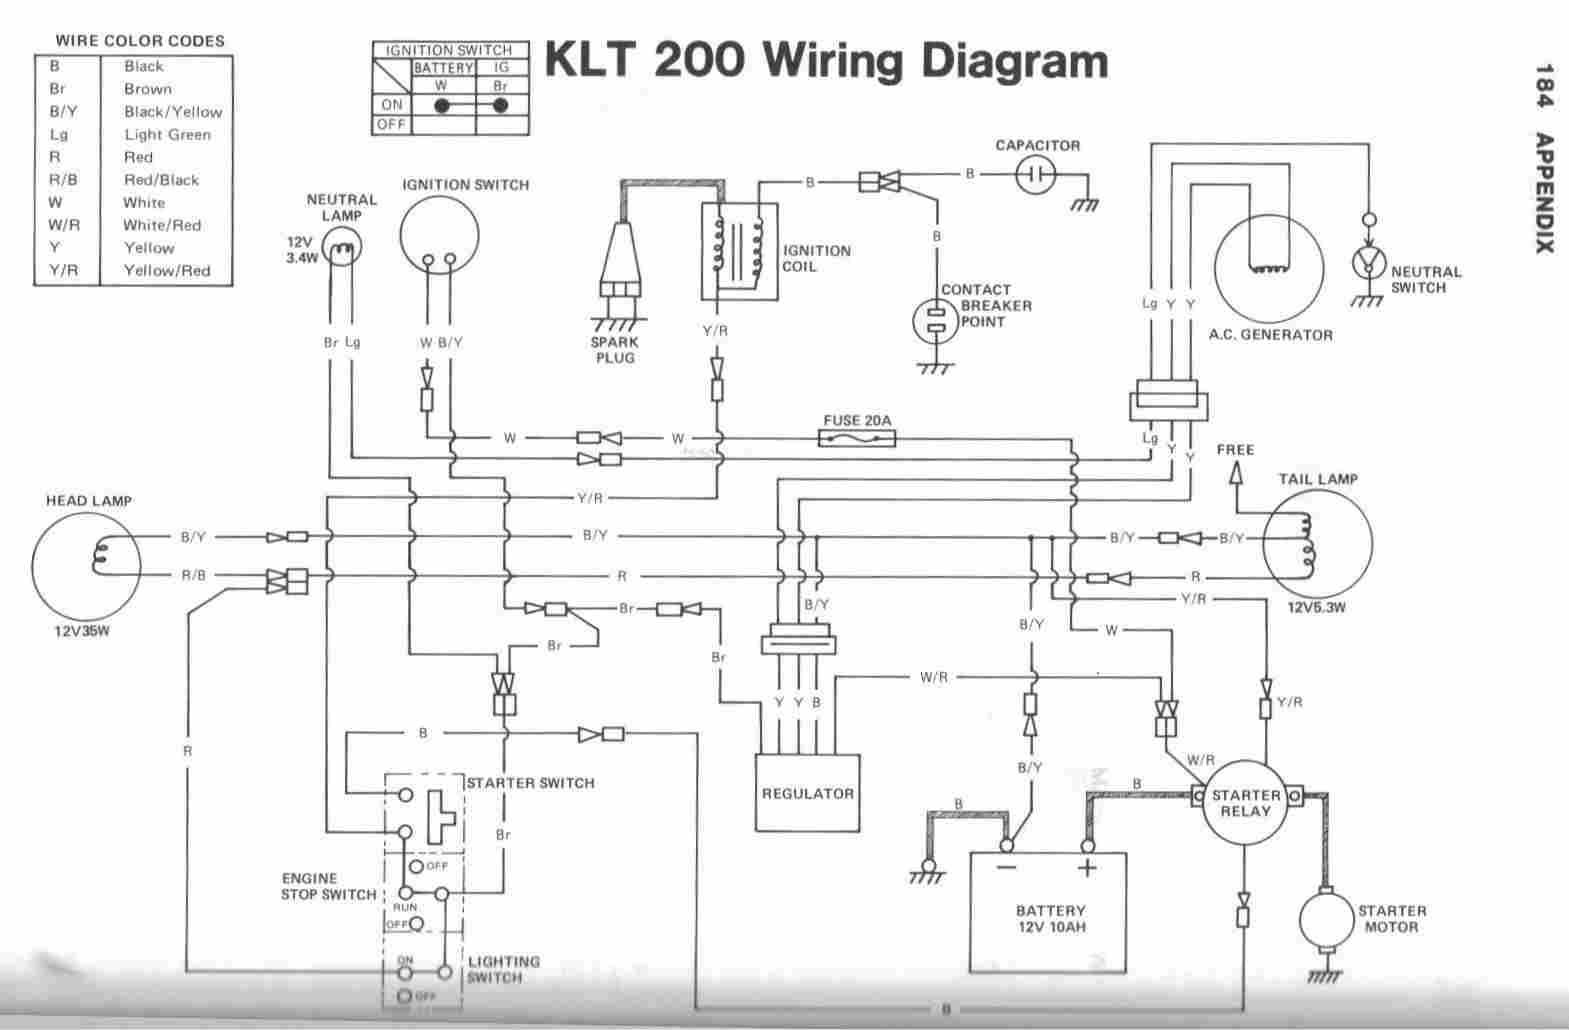 residential electrical wiring diagrams pdf easy routing cool ideas rh pinterest com electric circuit diagram pdf electric forklift wiring diagram pdf